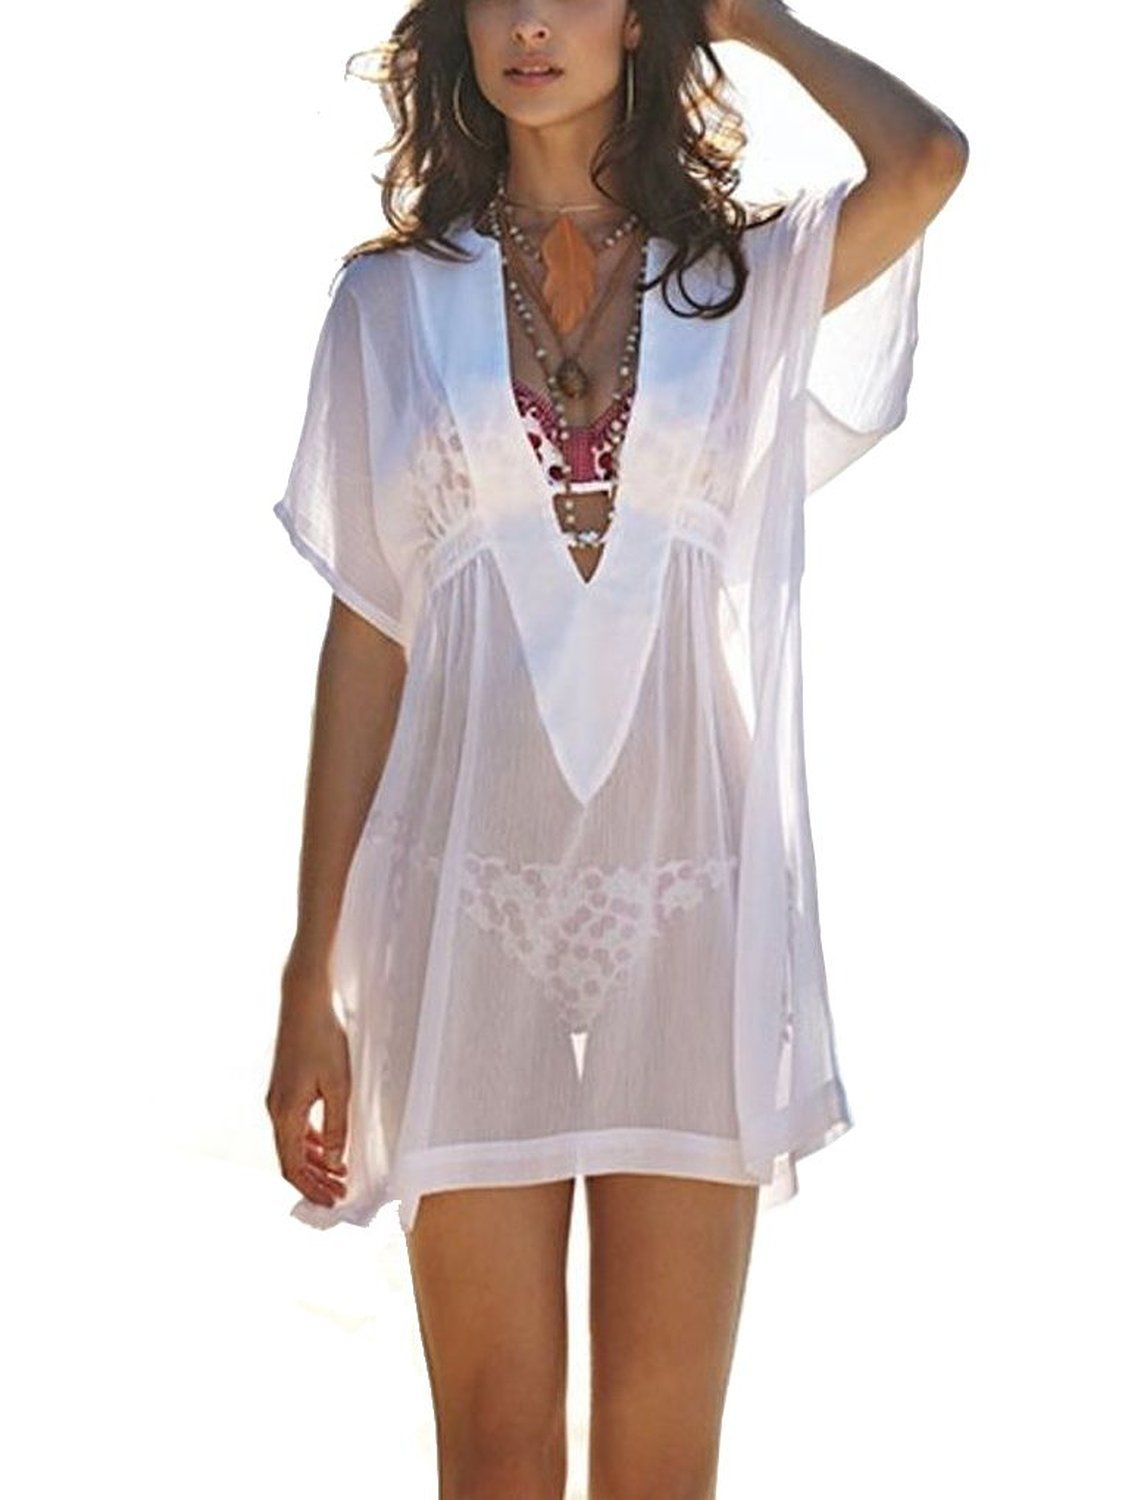 d837a84ac466e PAKULA® Women's Sexy Translucent Deep V Neck Swimsuit Cover Up Dress $19